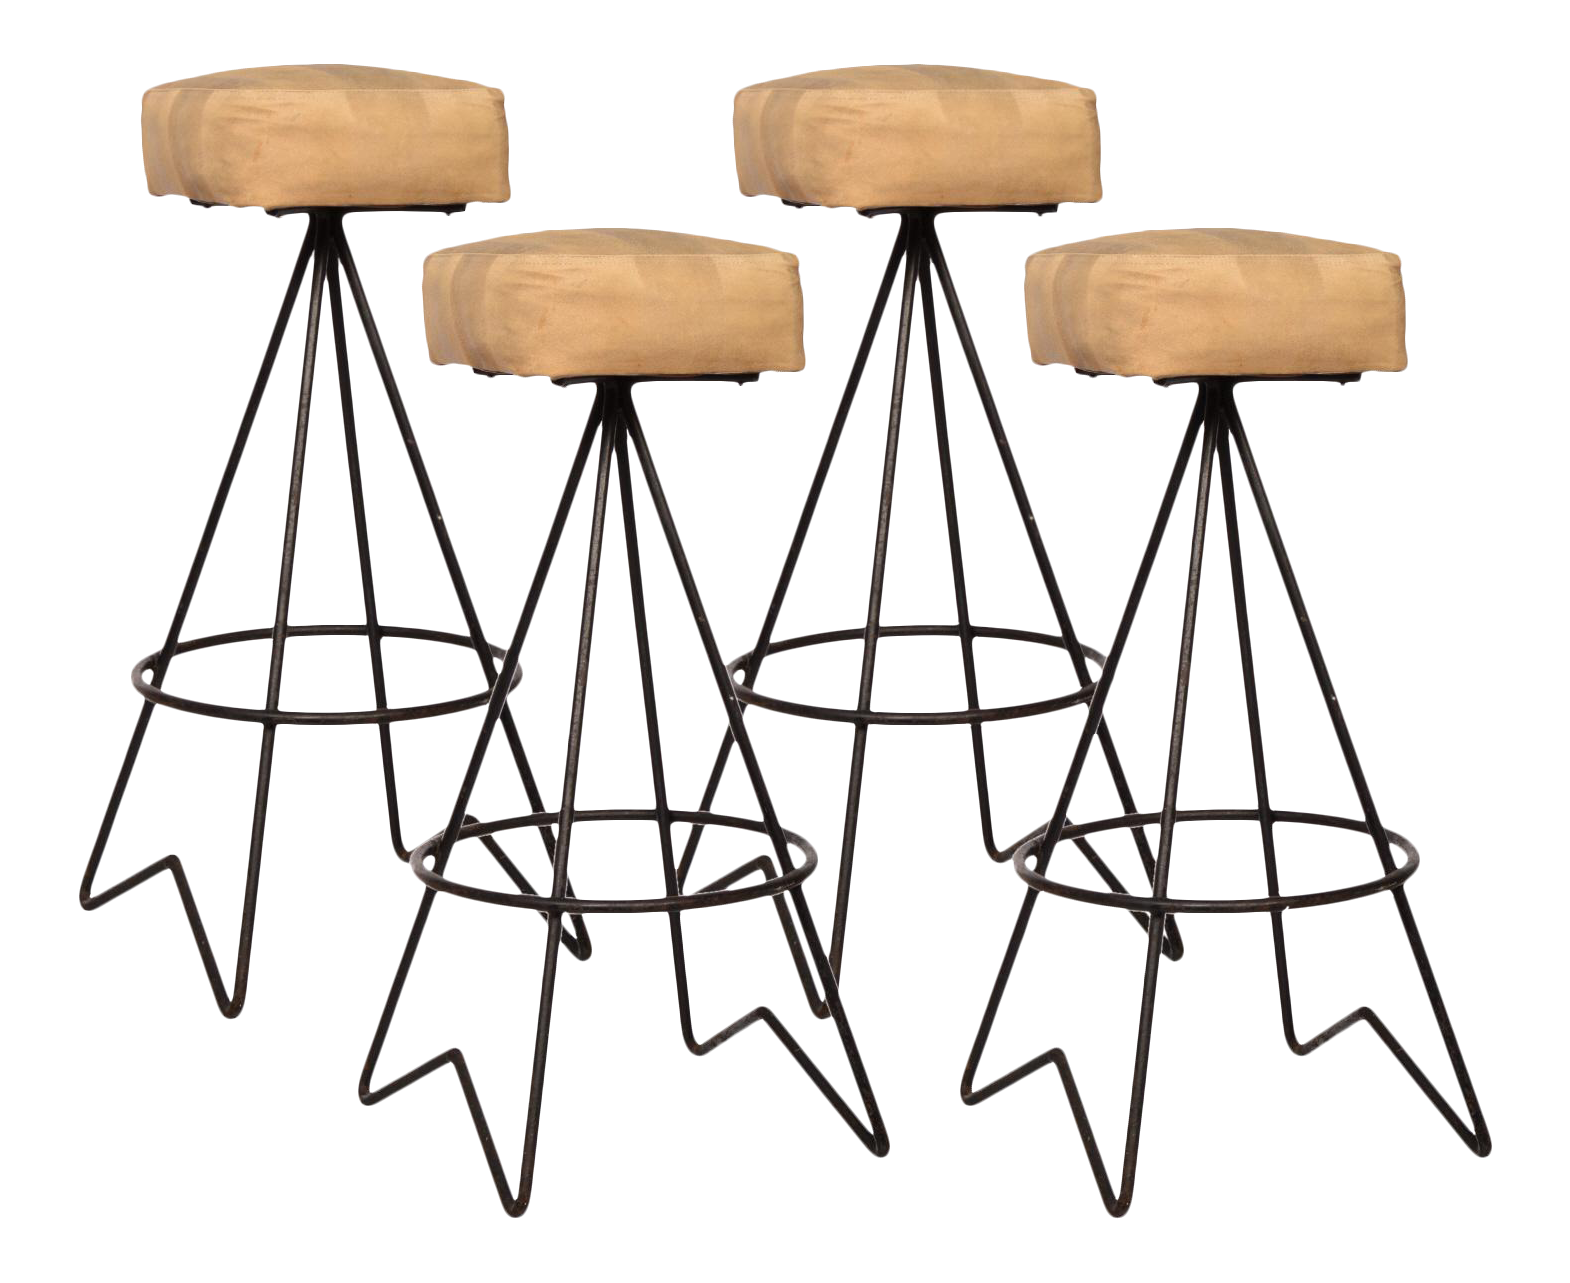 Mid Century Hairpin Leg Bar Stools Set of 4 Chairish : mid century hairpin leg bar stools set of 4 8564 from www.chairish.com size 1570 x 1283 png 1023kB